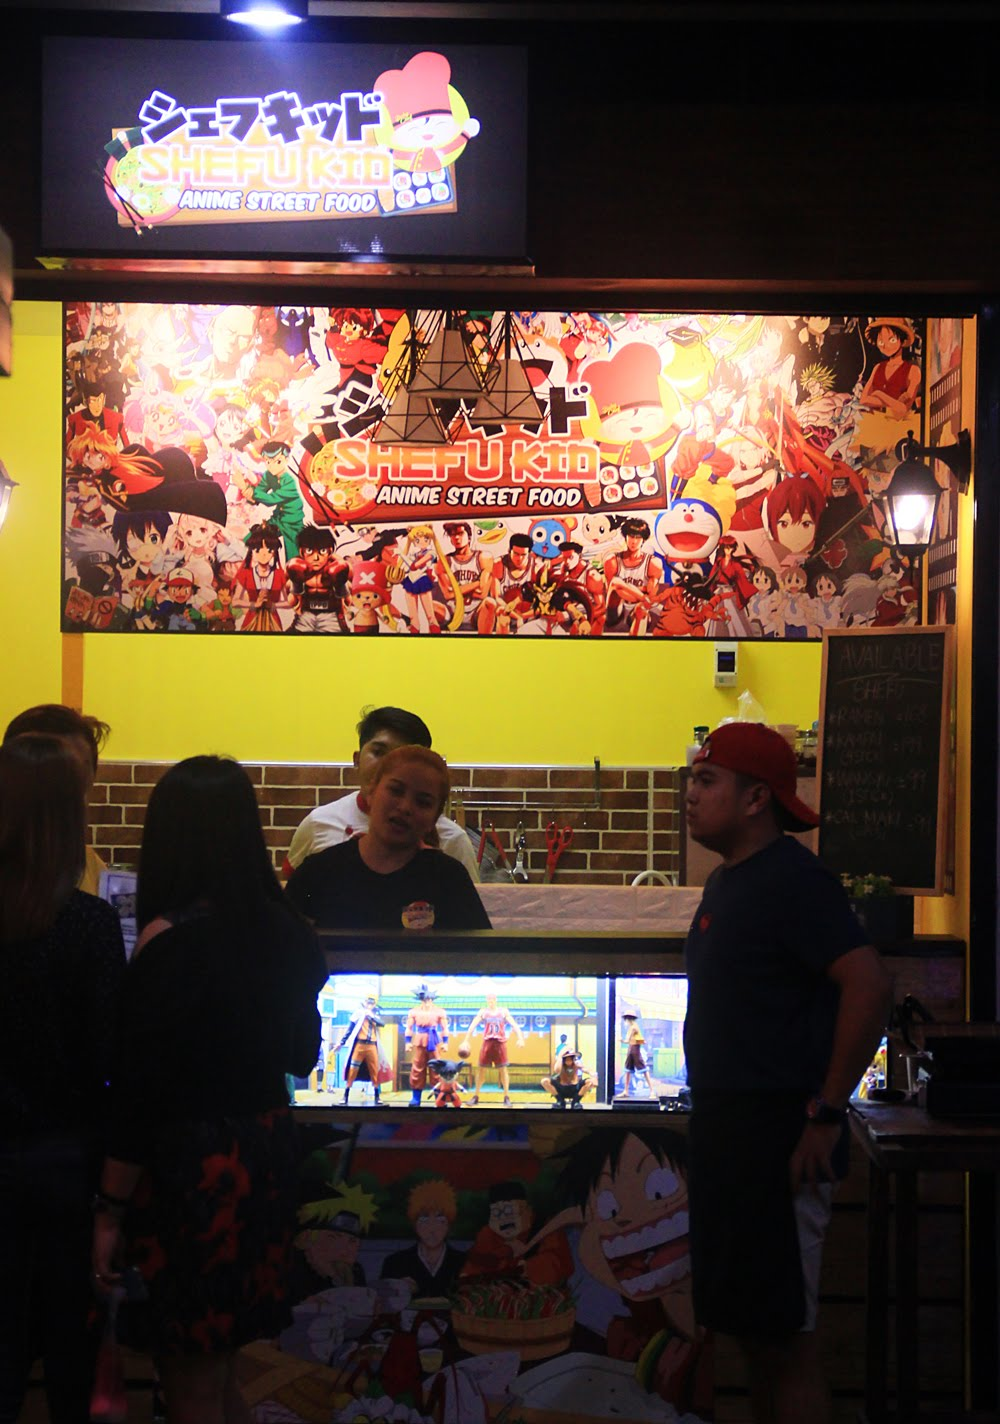 Shefu Kid Anime Street Food Stall